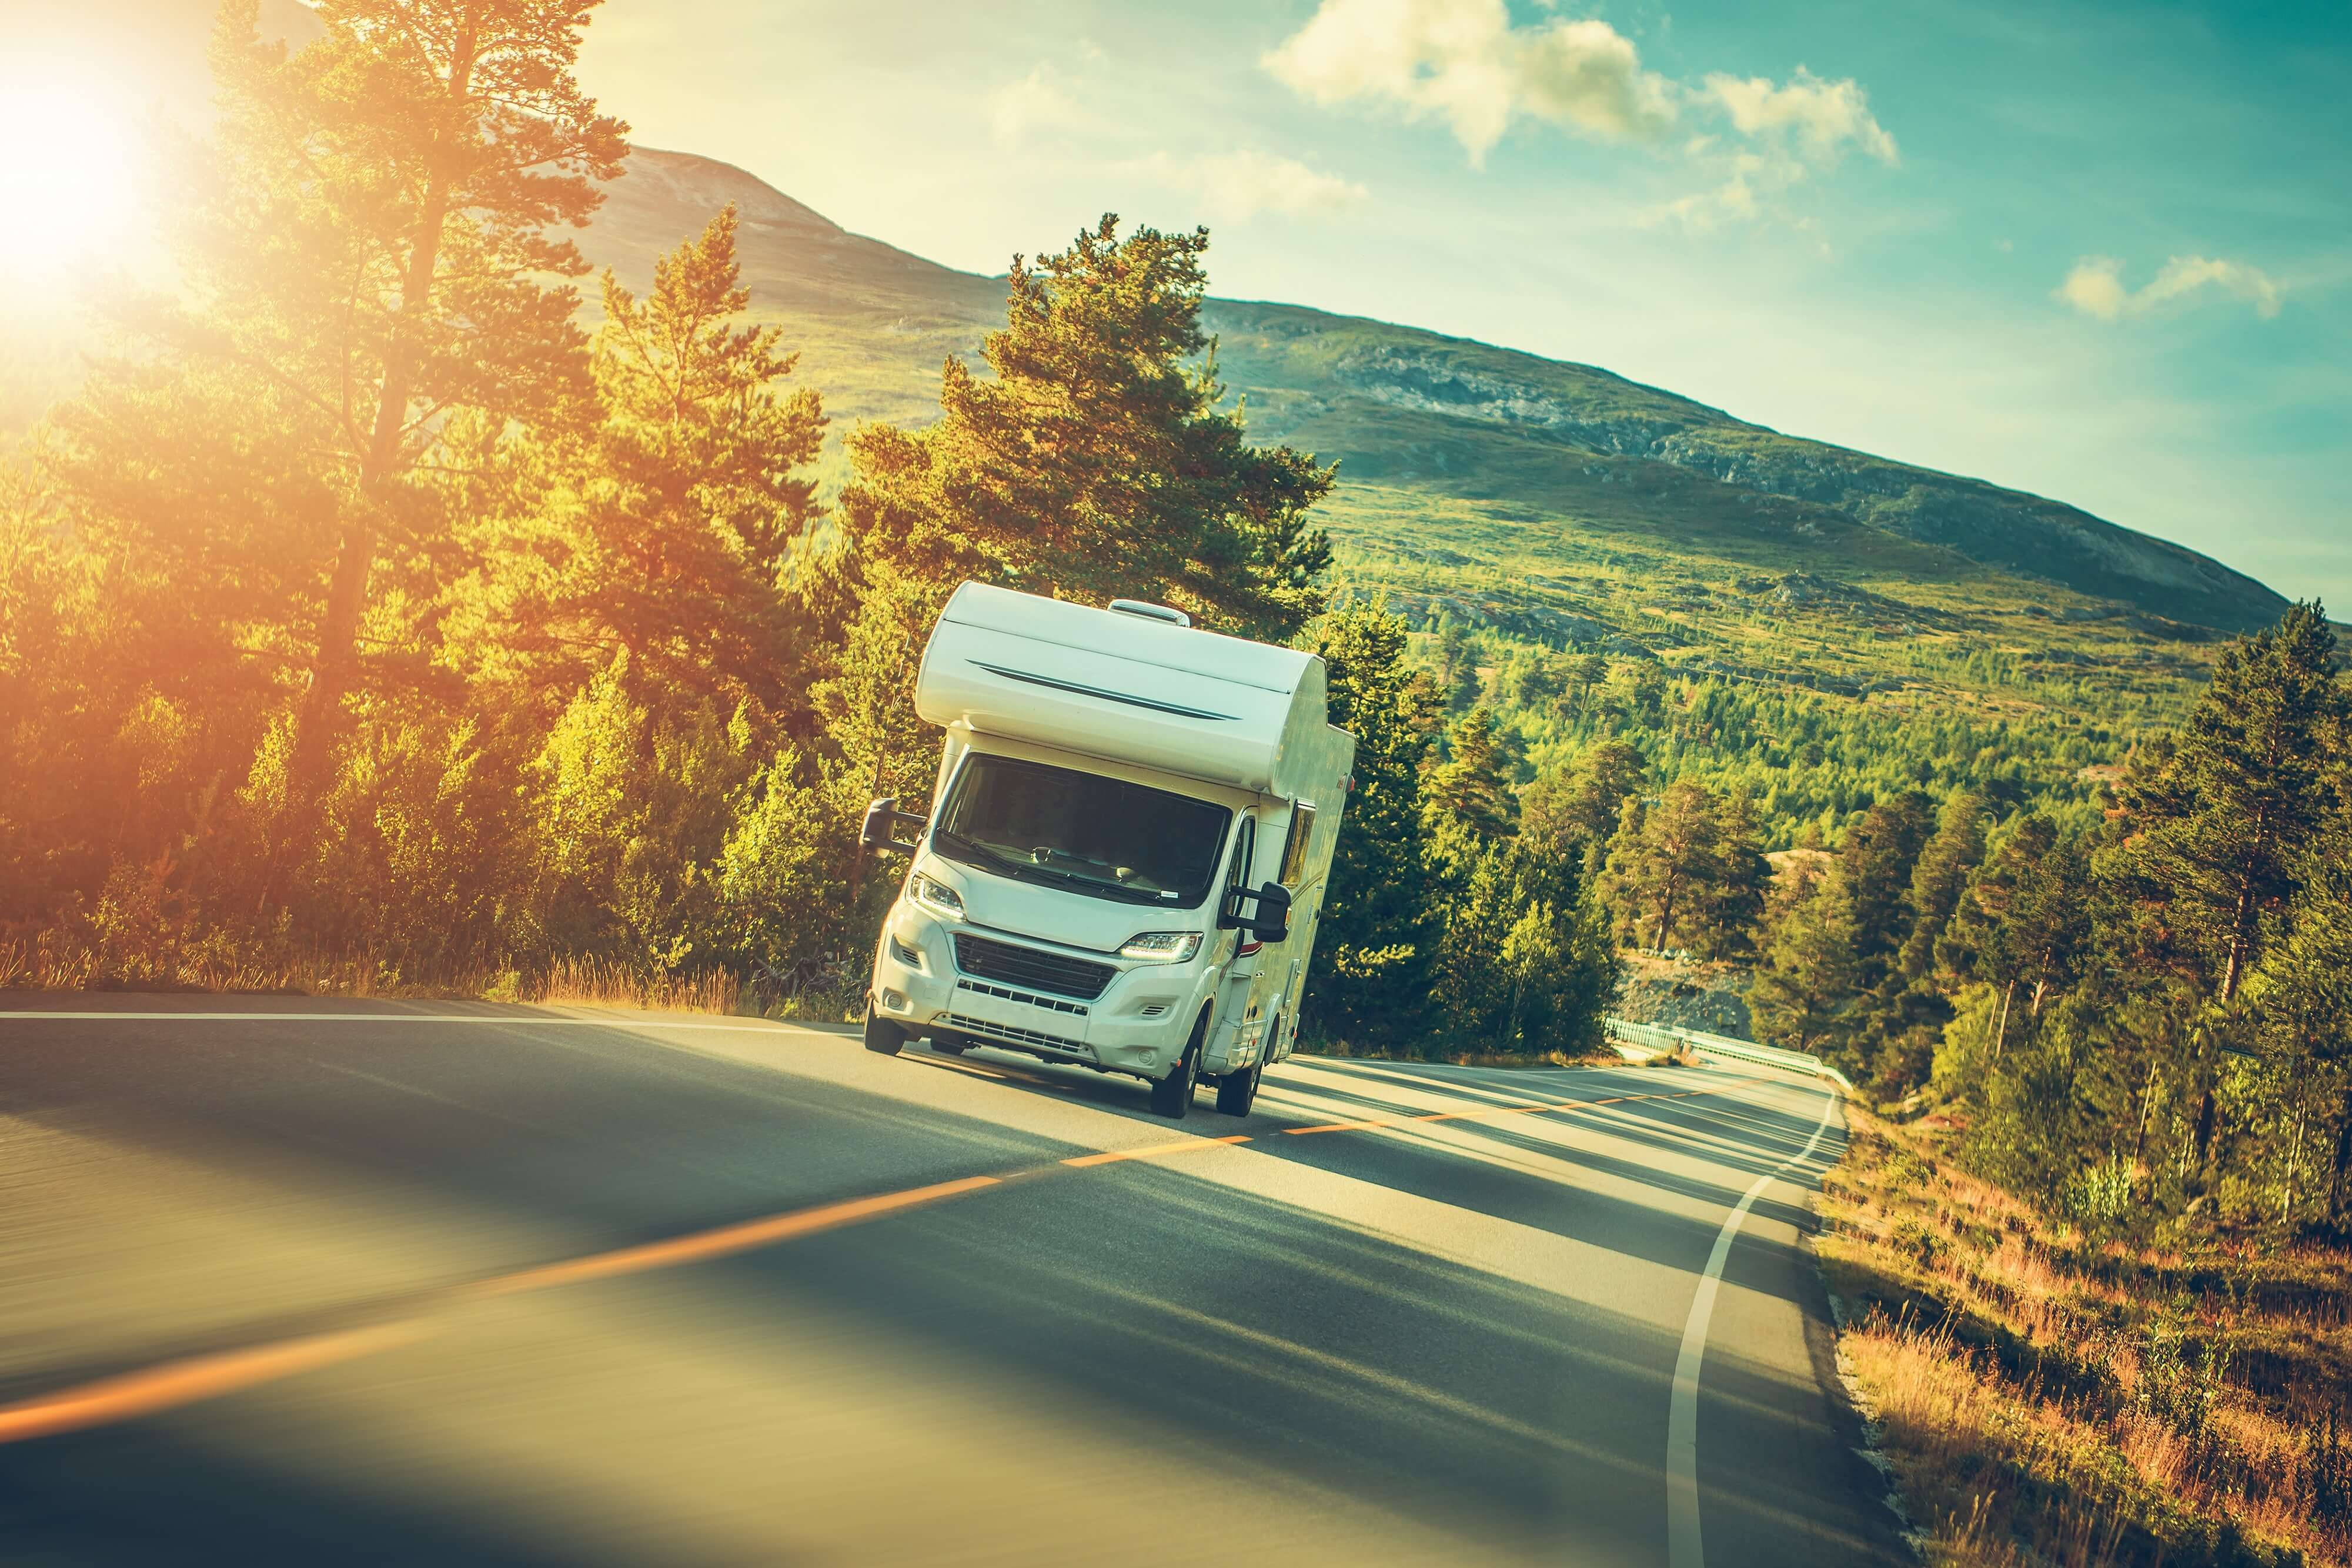 Time to De-Winterize Your RV for Summer